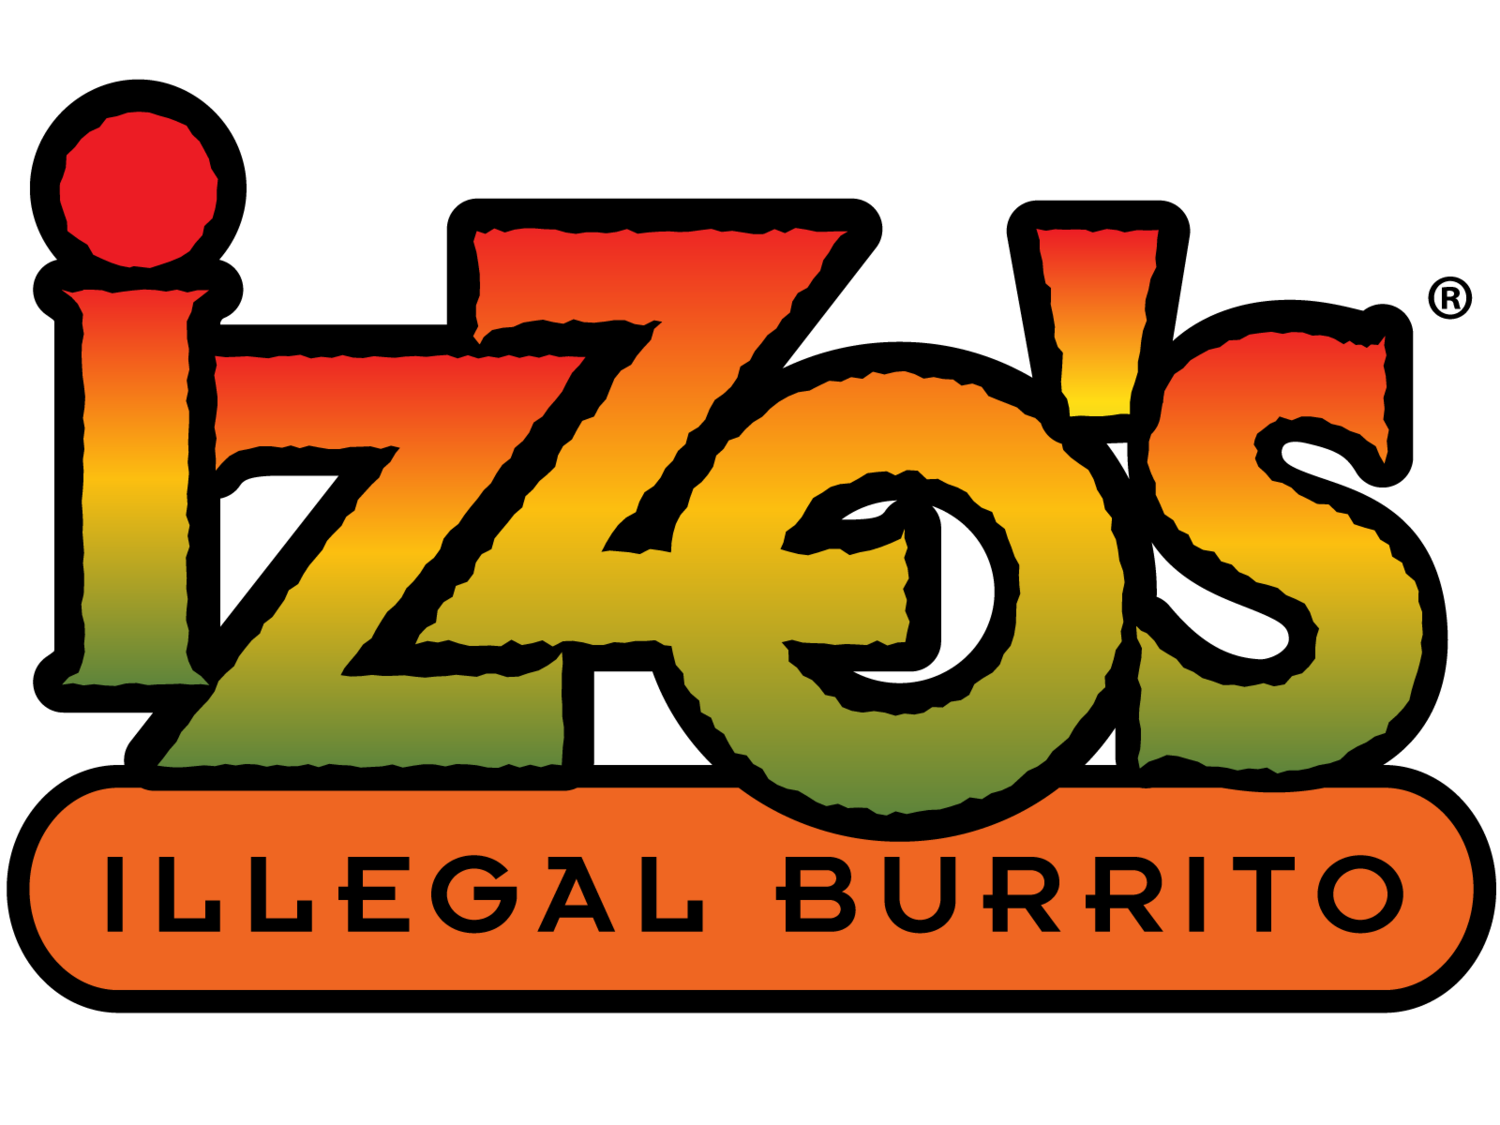 Izzos.png